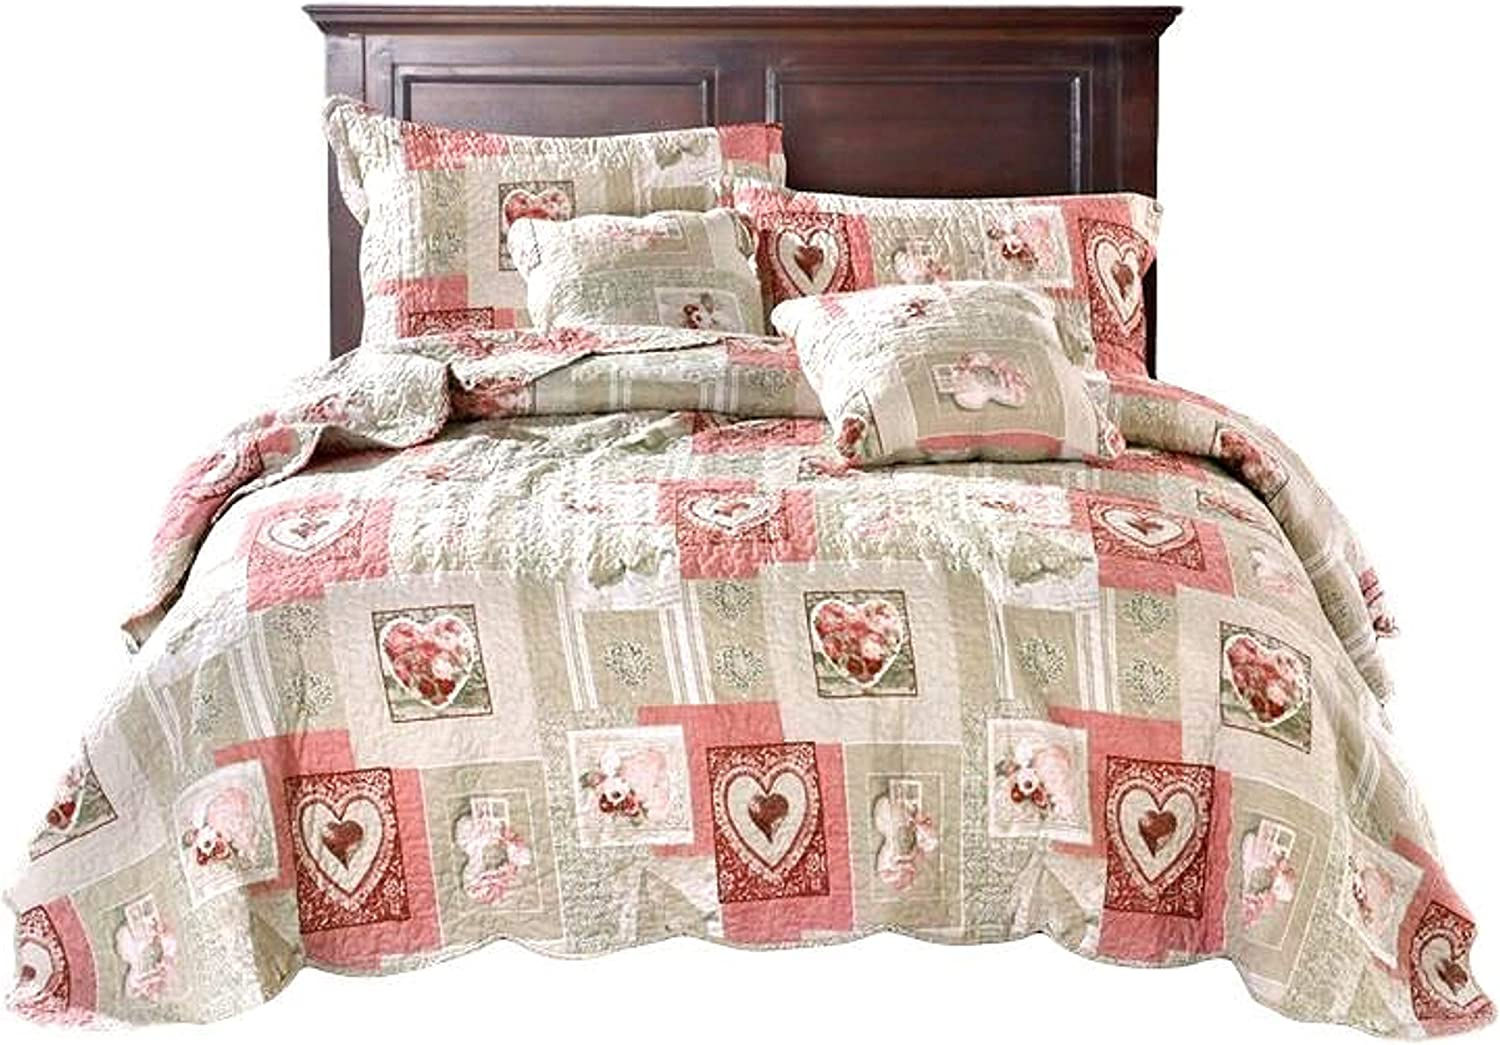 Tache Home Fashion Dainty Sweetheart Cottage Patchwork Quilted Coverlet Bedspread Set - Bright Vibrant Scalloped Multi Colorful White Red Pink Floral Print - Full